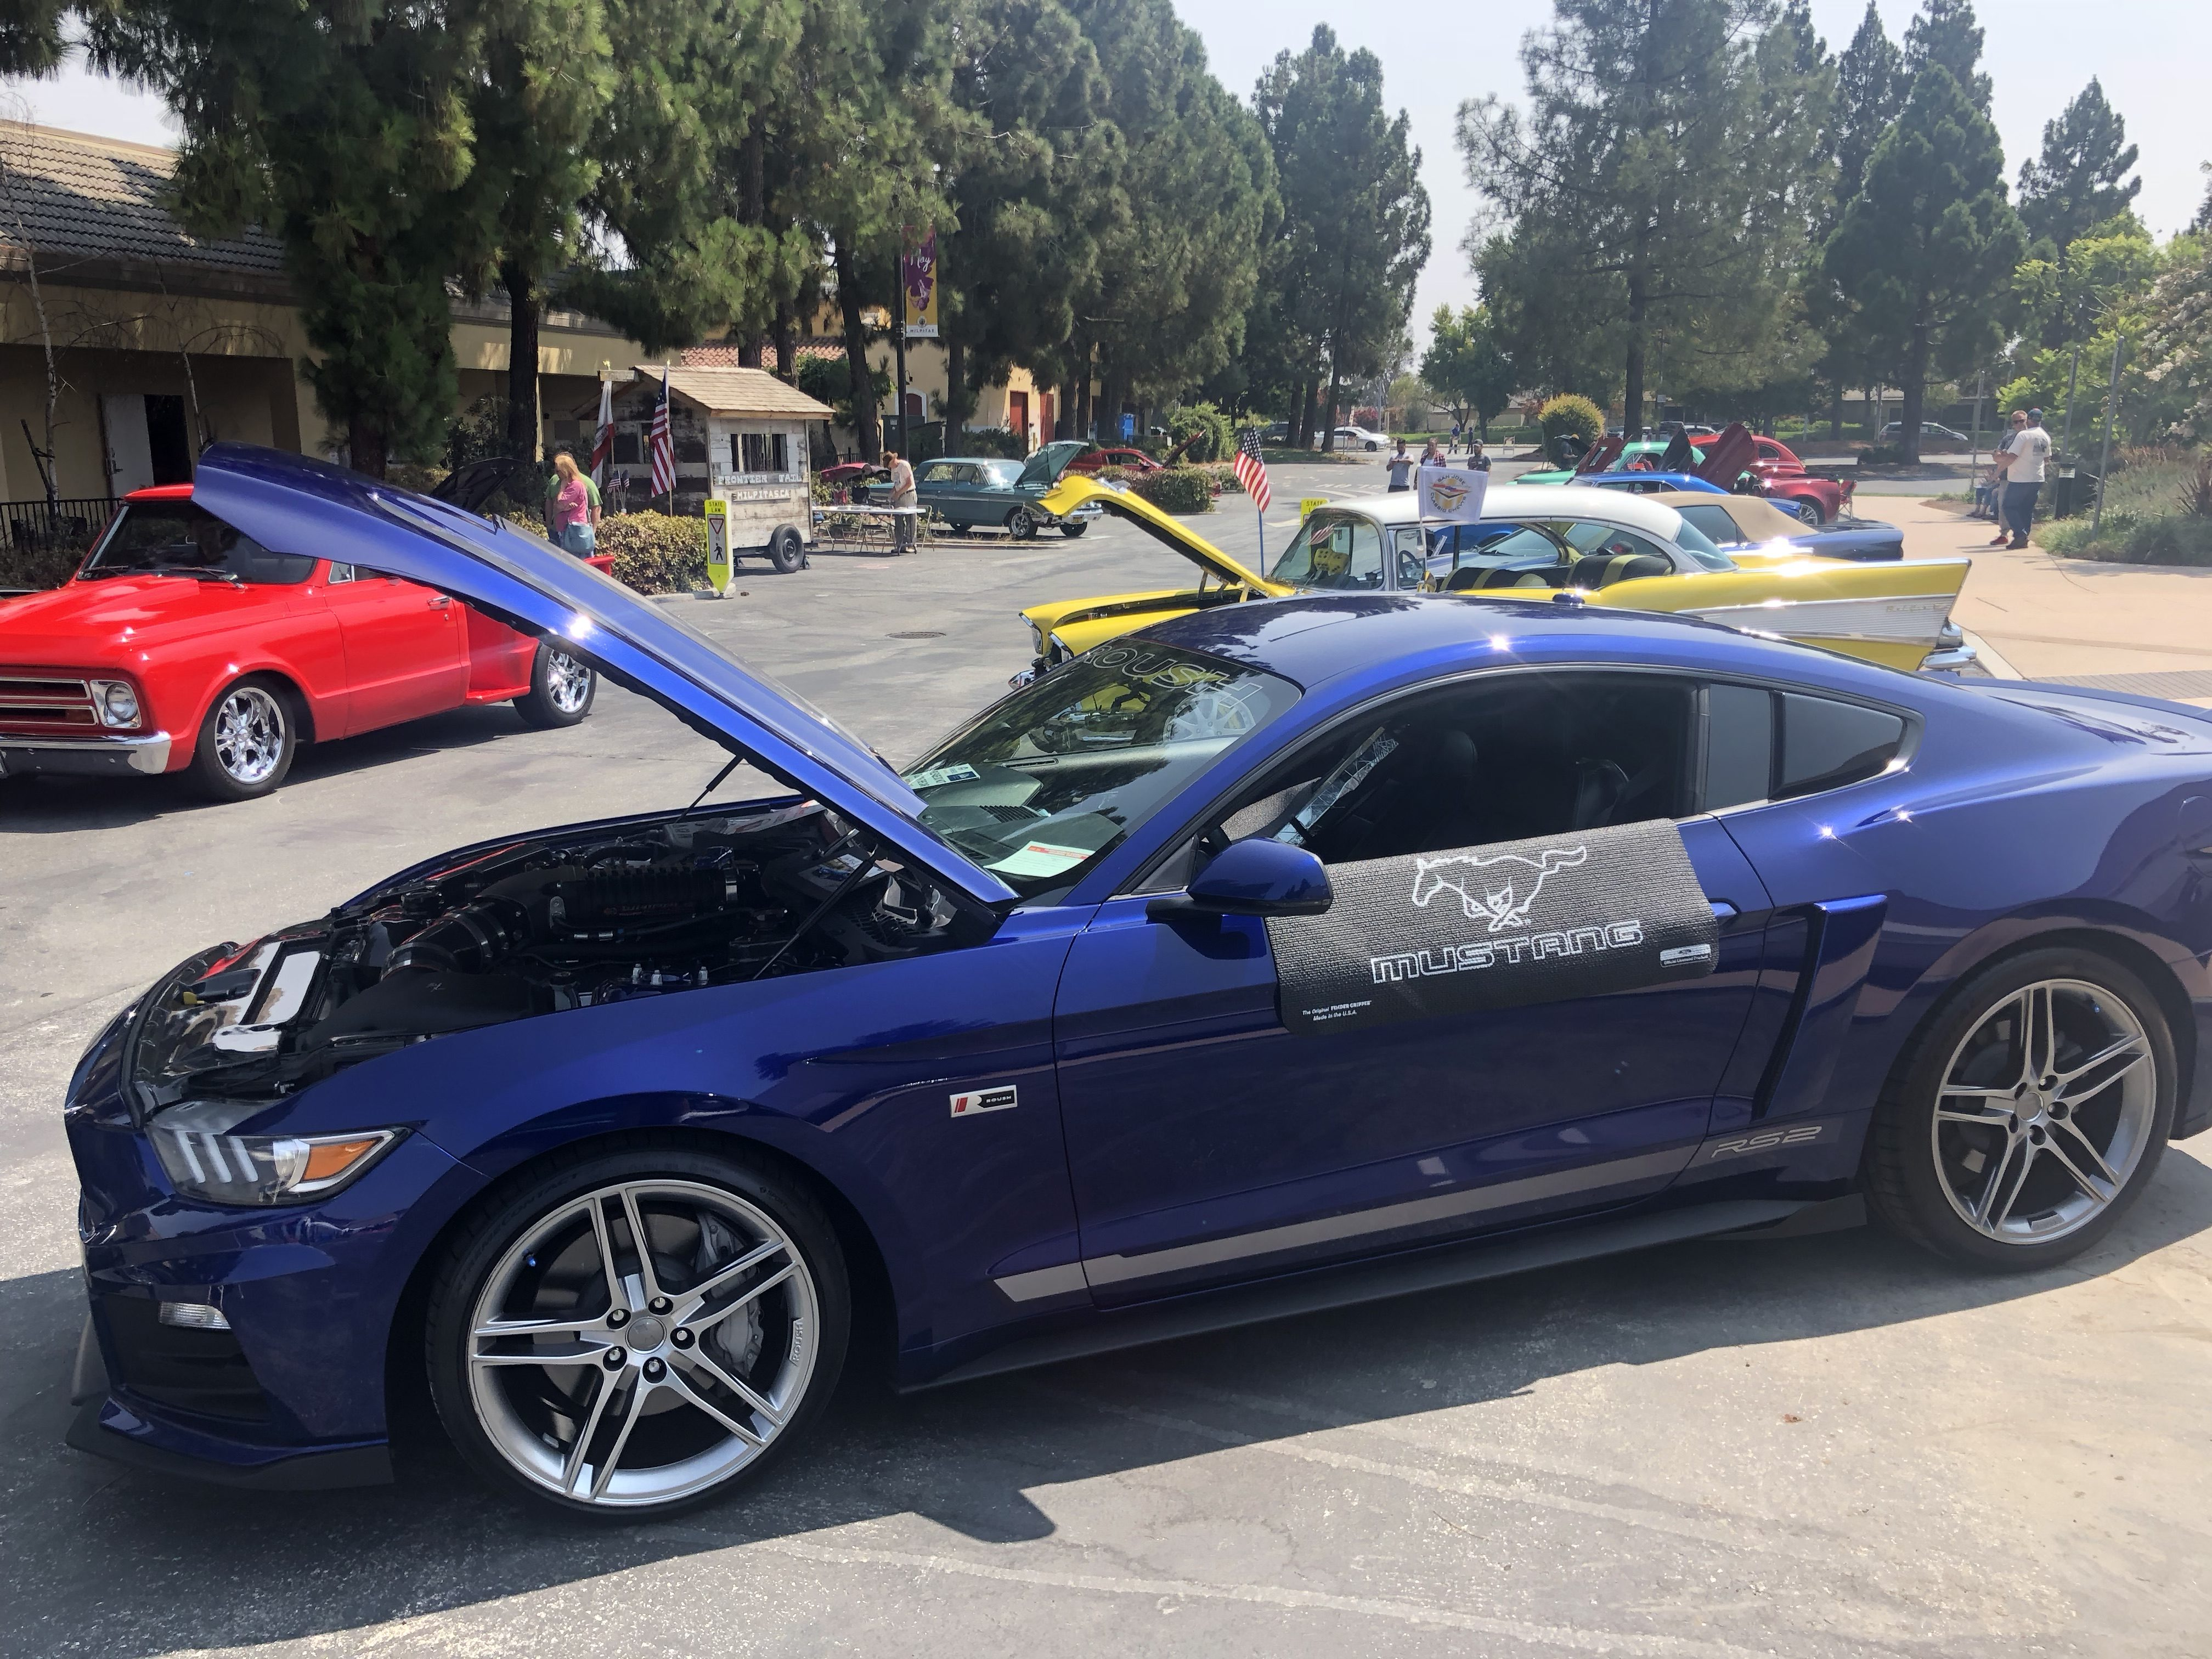 Car Show To Support Veterans The Milpitas Beat - Is there a car show near me today